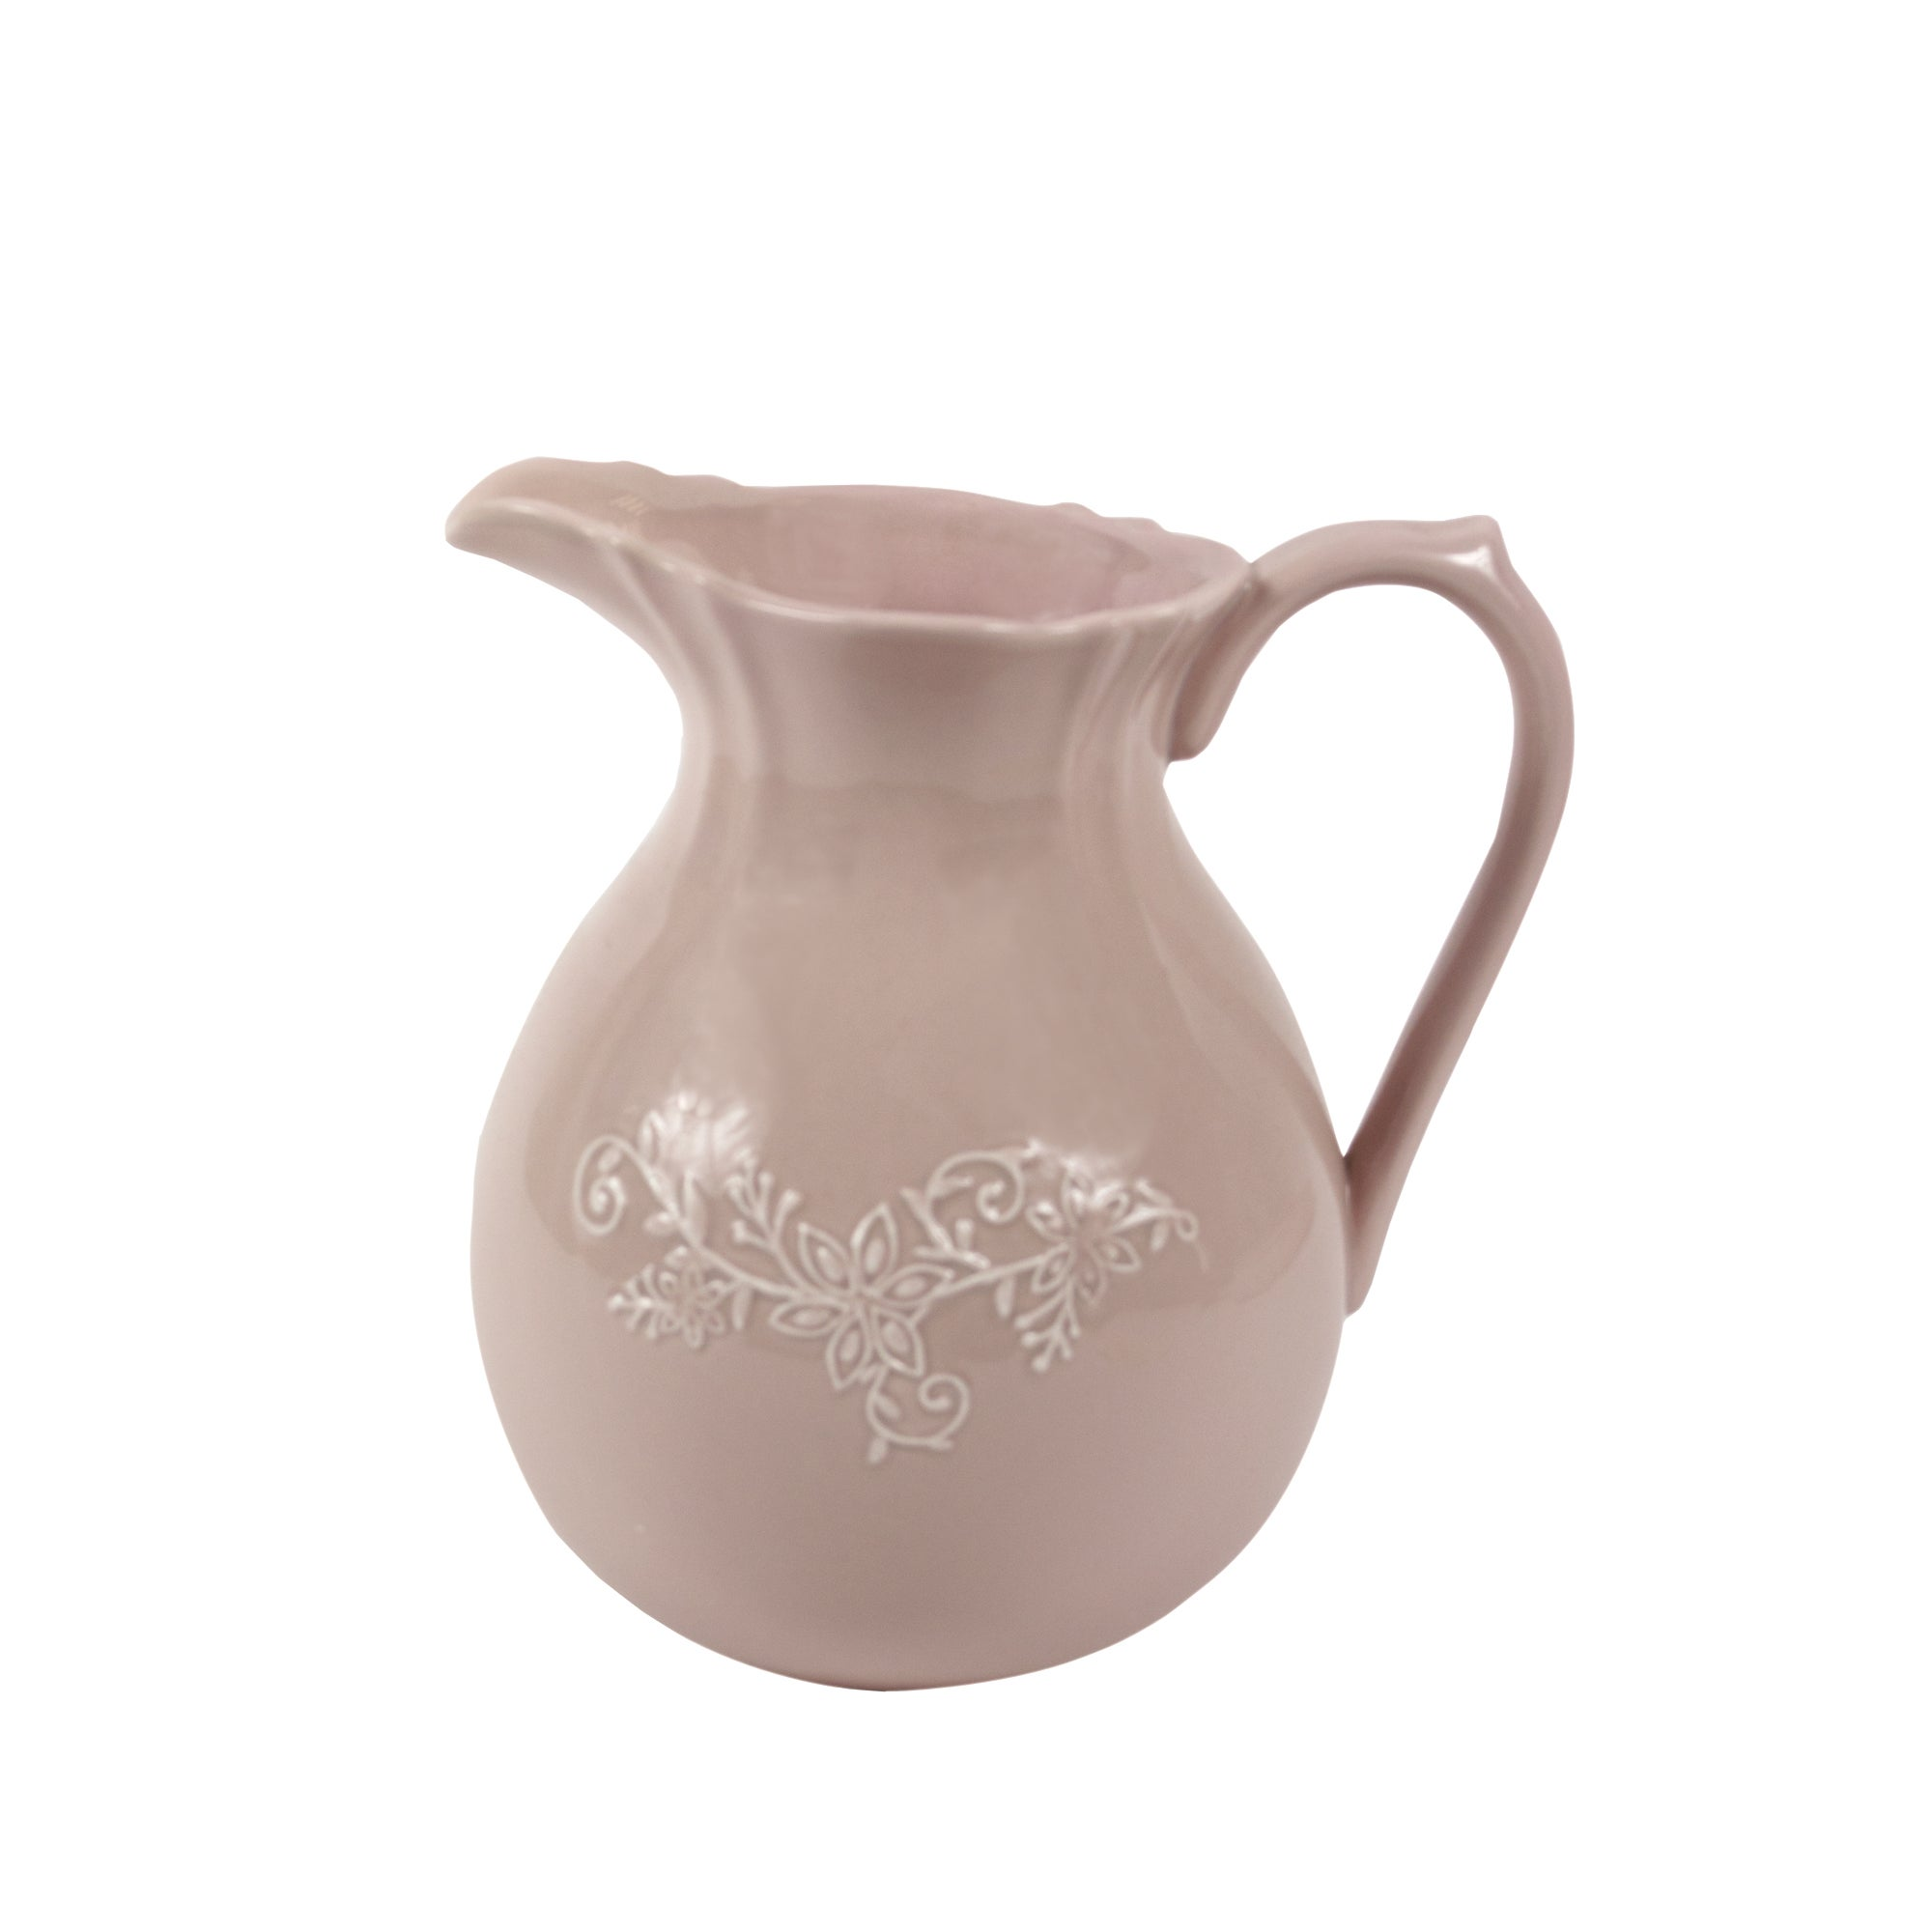 Maison Chique Collection Embossed Pink Jug